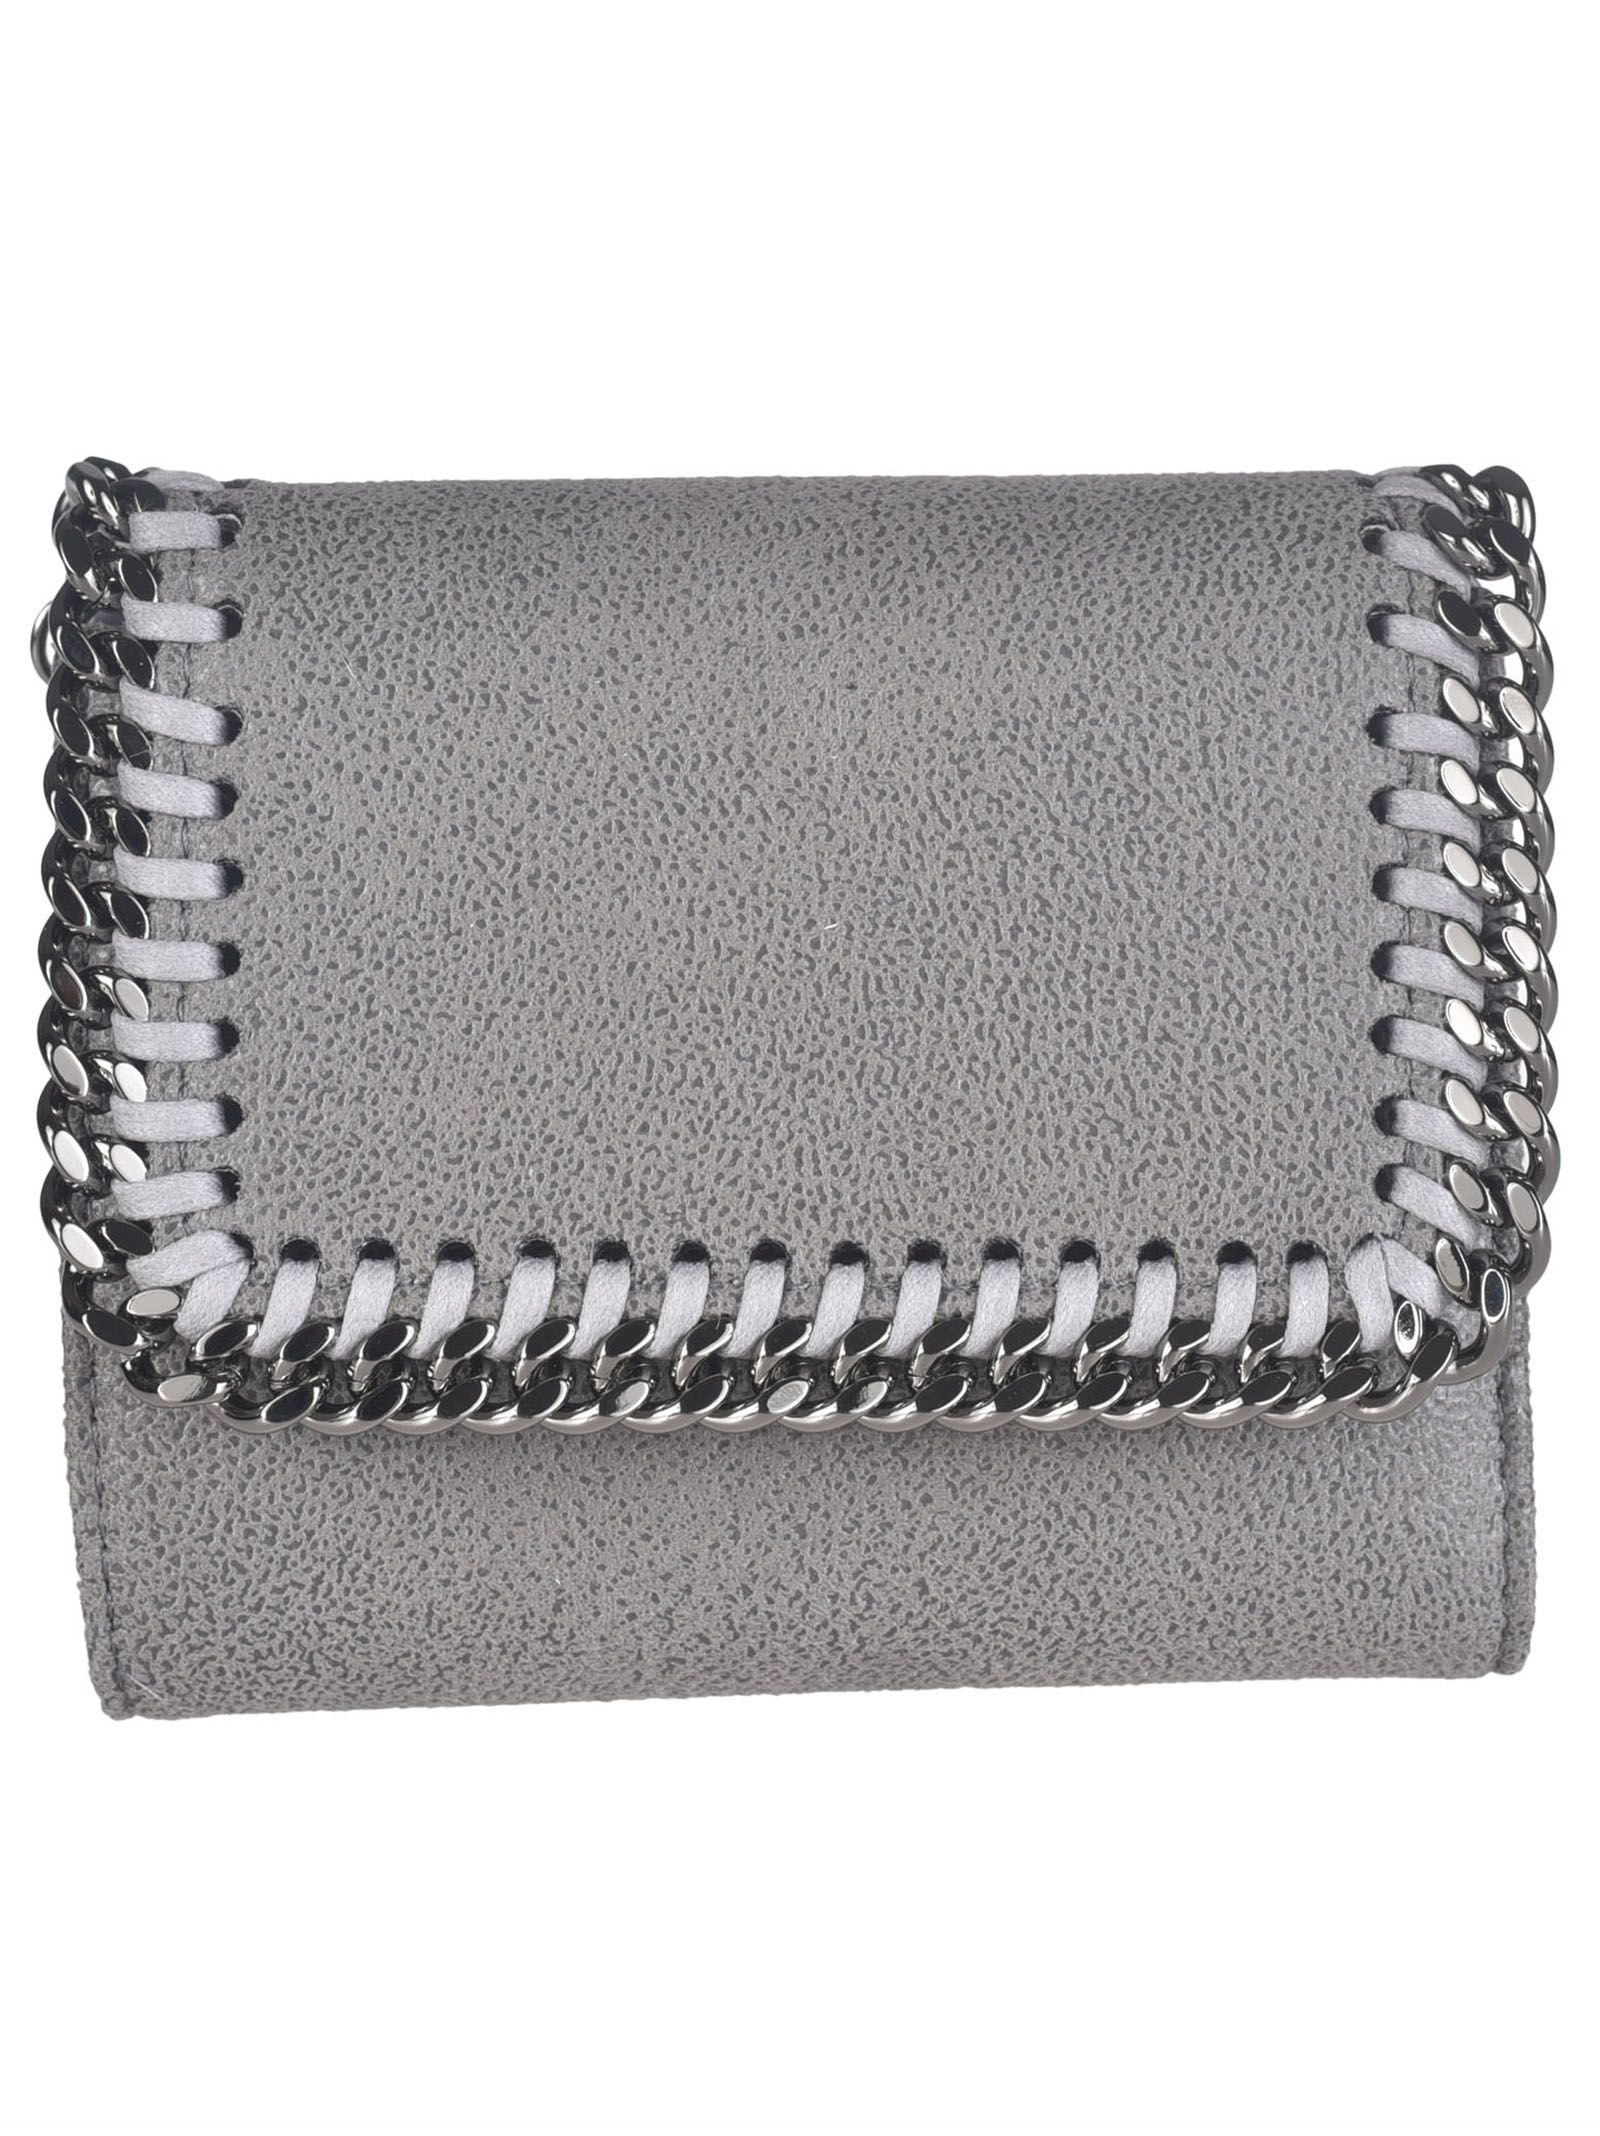 Stella McCartney Mini Falabella Continental Wallet